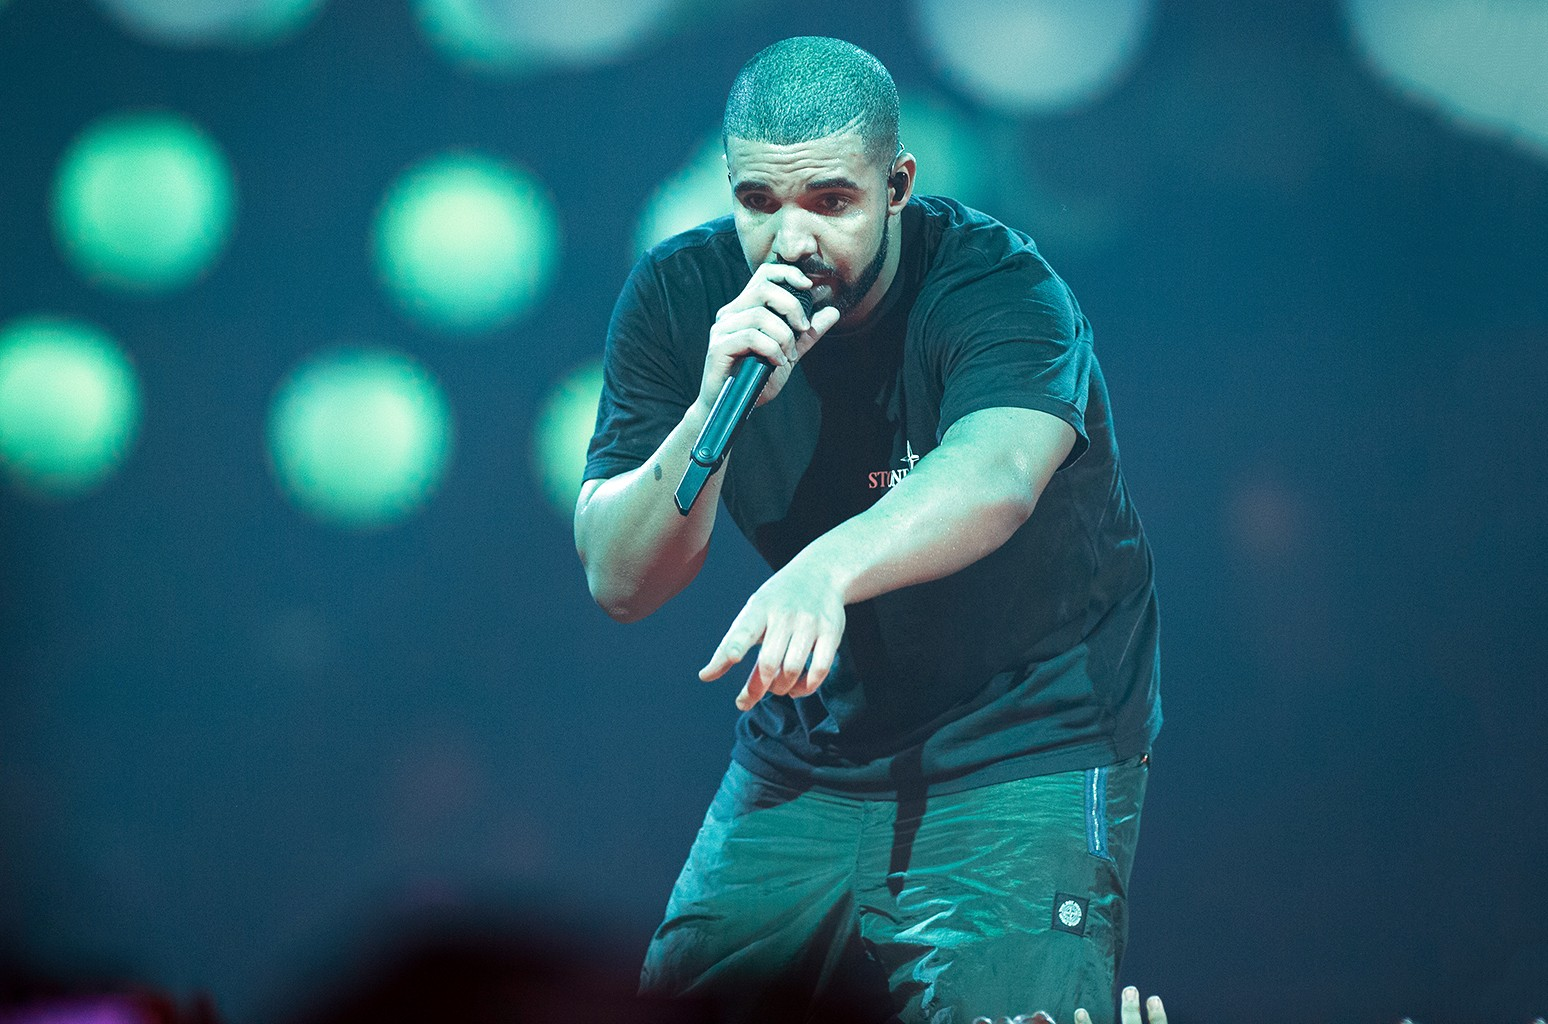 Drake performs at AccorHotels Arena on March 12, 2017 in Paris.